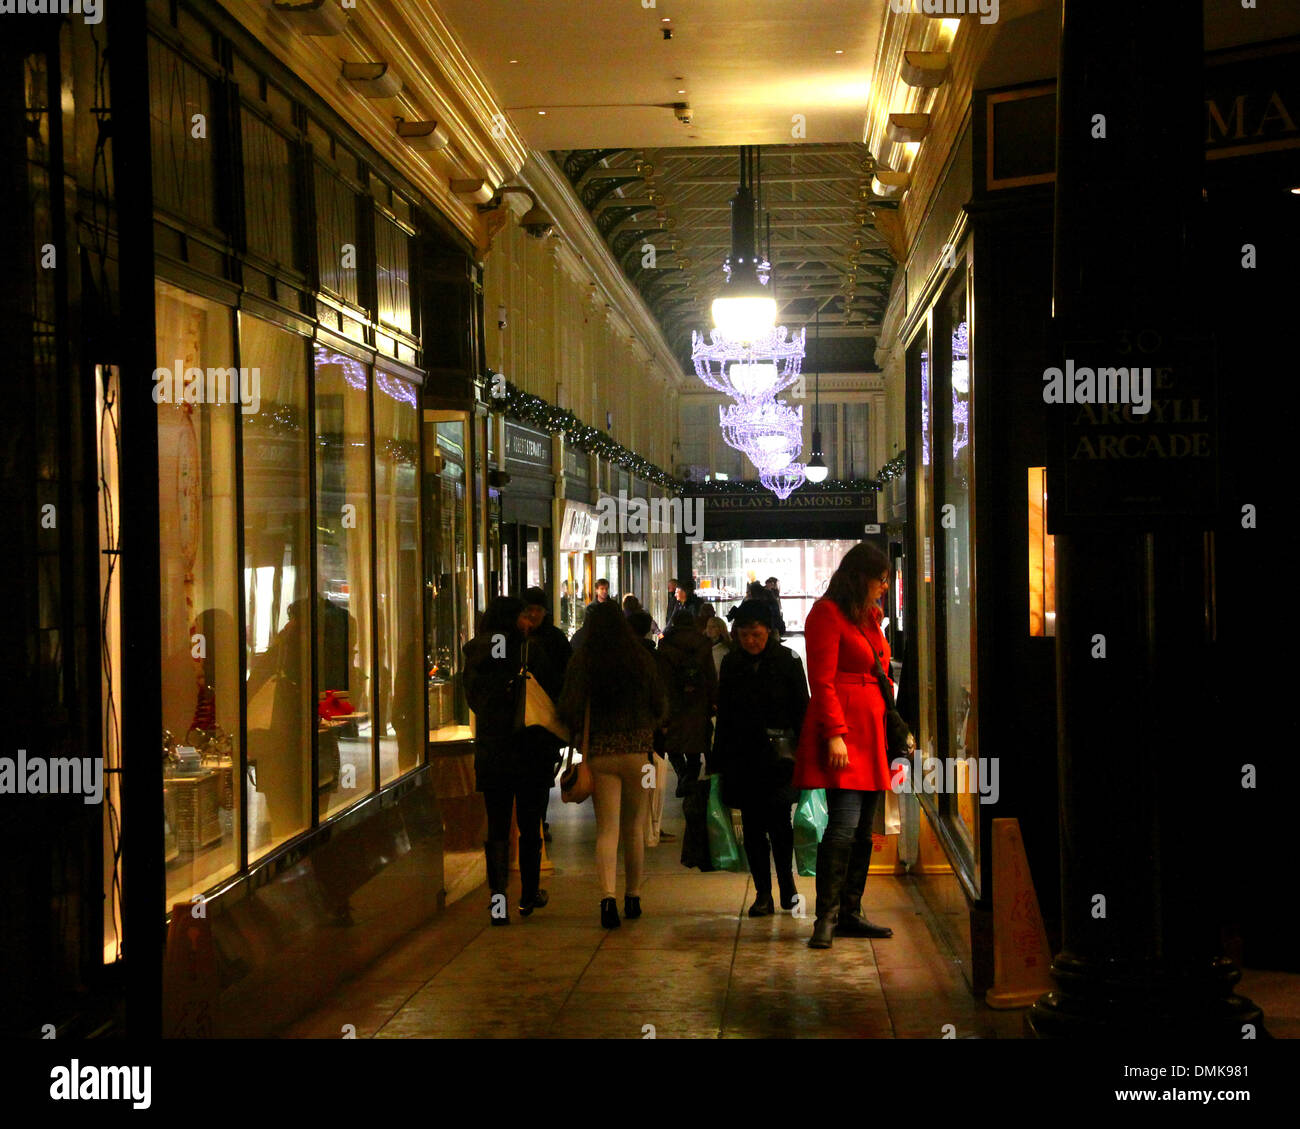 UK Weather 14 December.  Glasgow UK, Christmas shoppers sheltering from the rain and stormy winds in the Argyll Arcade. - Stock Image